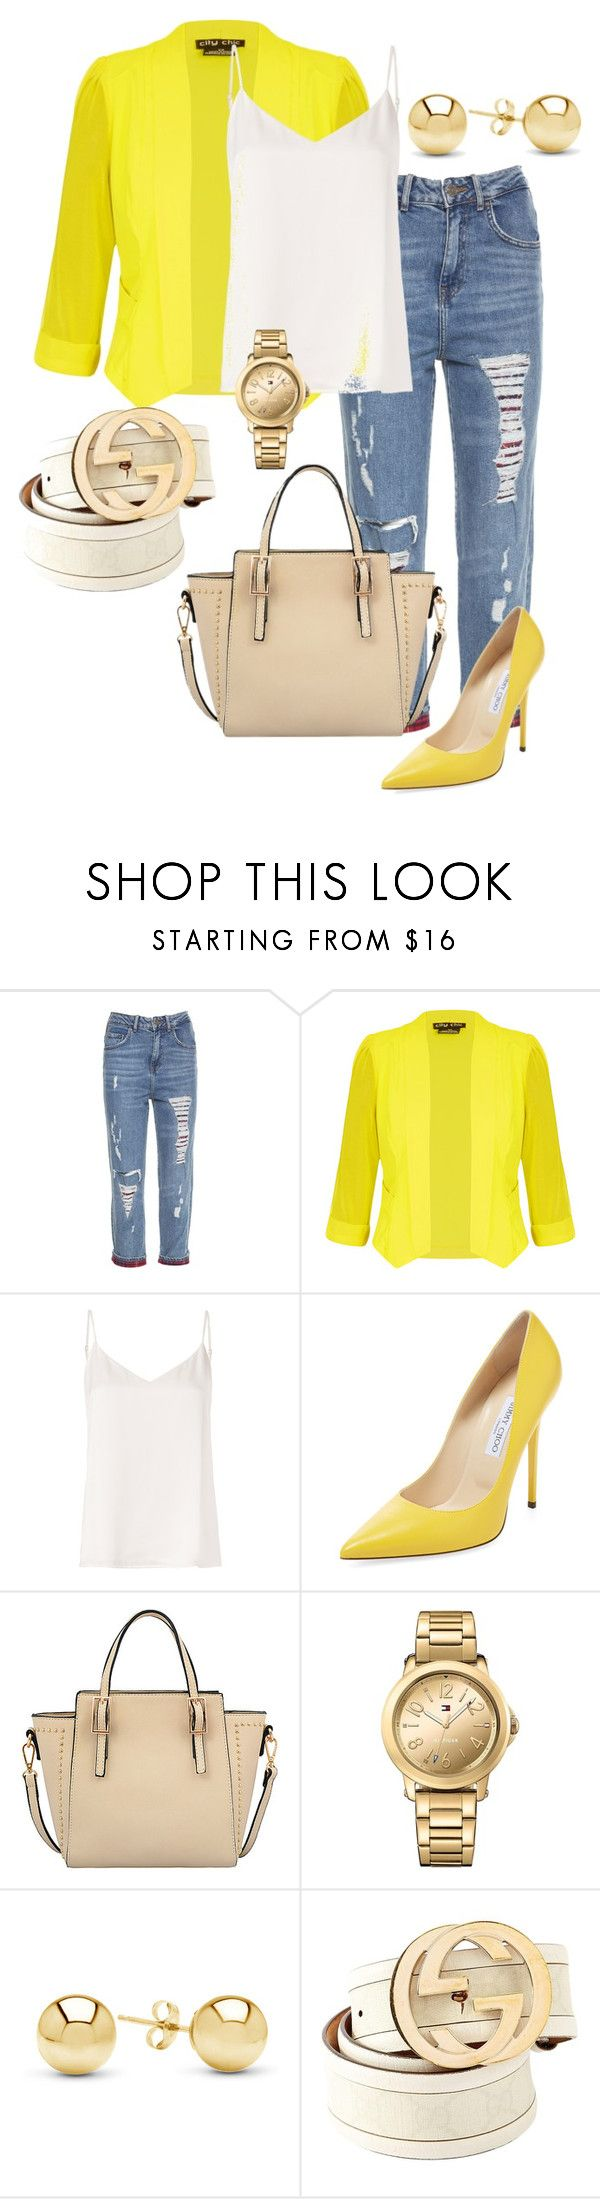 """""""желтый жакет"""" by studio-al-t on Polyvore featuring City Chic, L'Agence, Jimmy Choo, Mellow World, Tommy Hilfiger, Jewelonfire, Gucci and plus size clothing"""